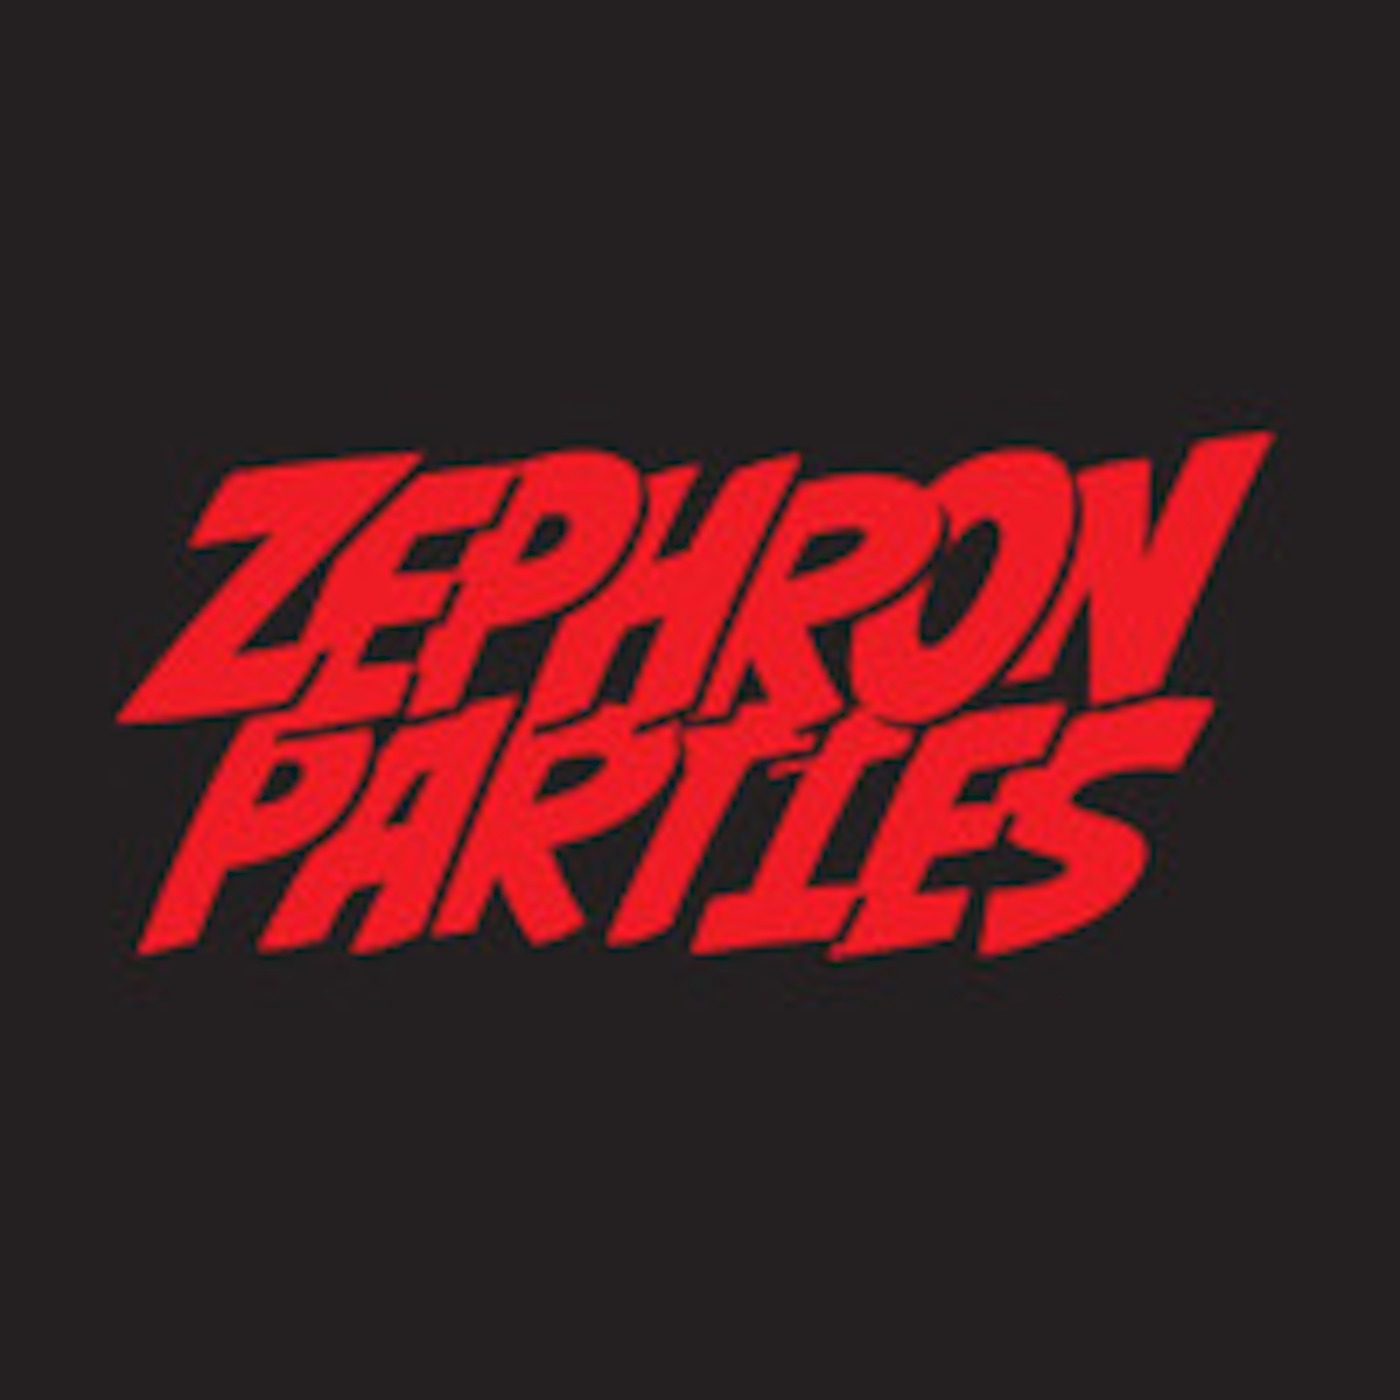 Zephron Podcast